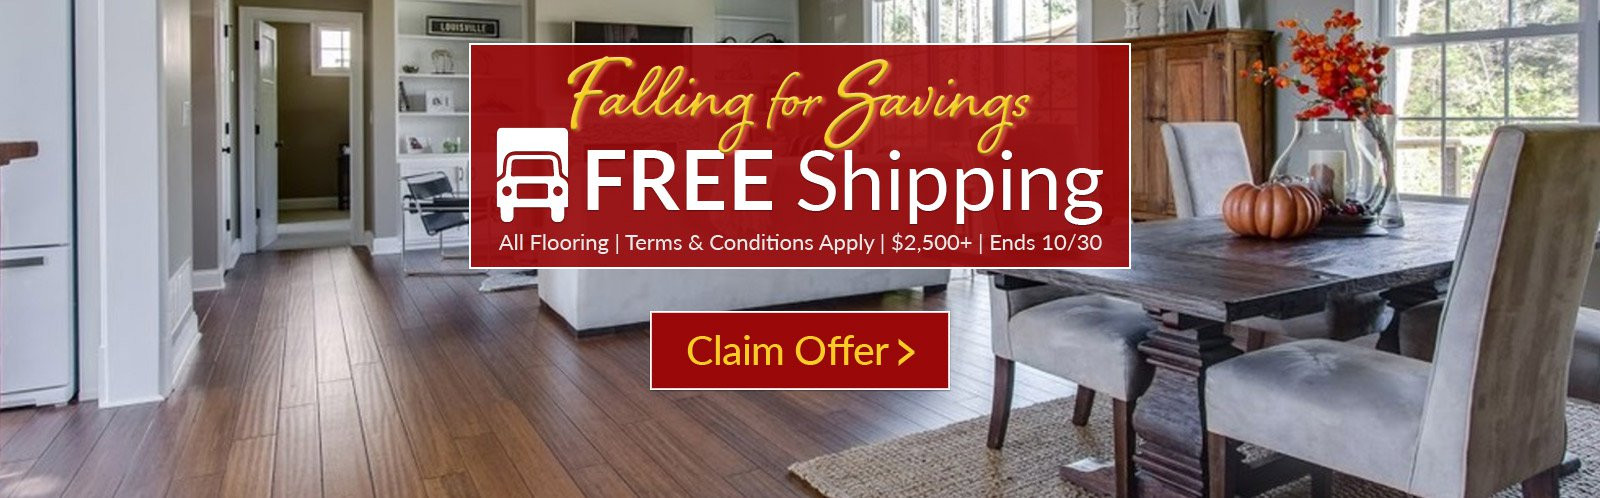 clearance solid hardwood flooring of green building construction materials and home decor cali bamboo throughout your shopping cart is empty